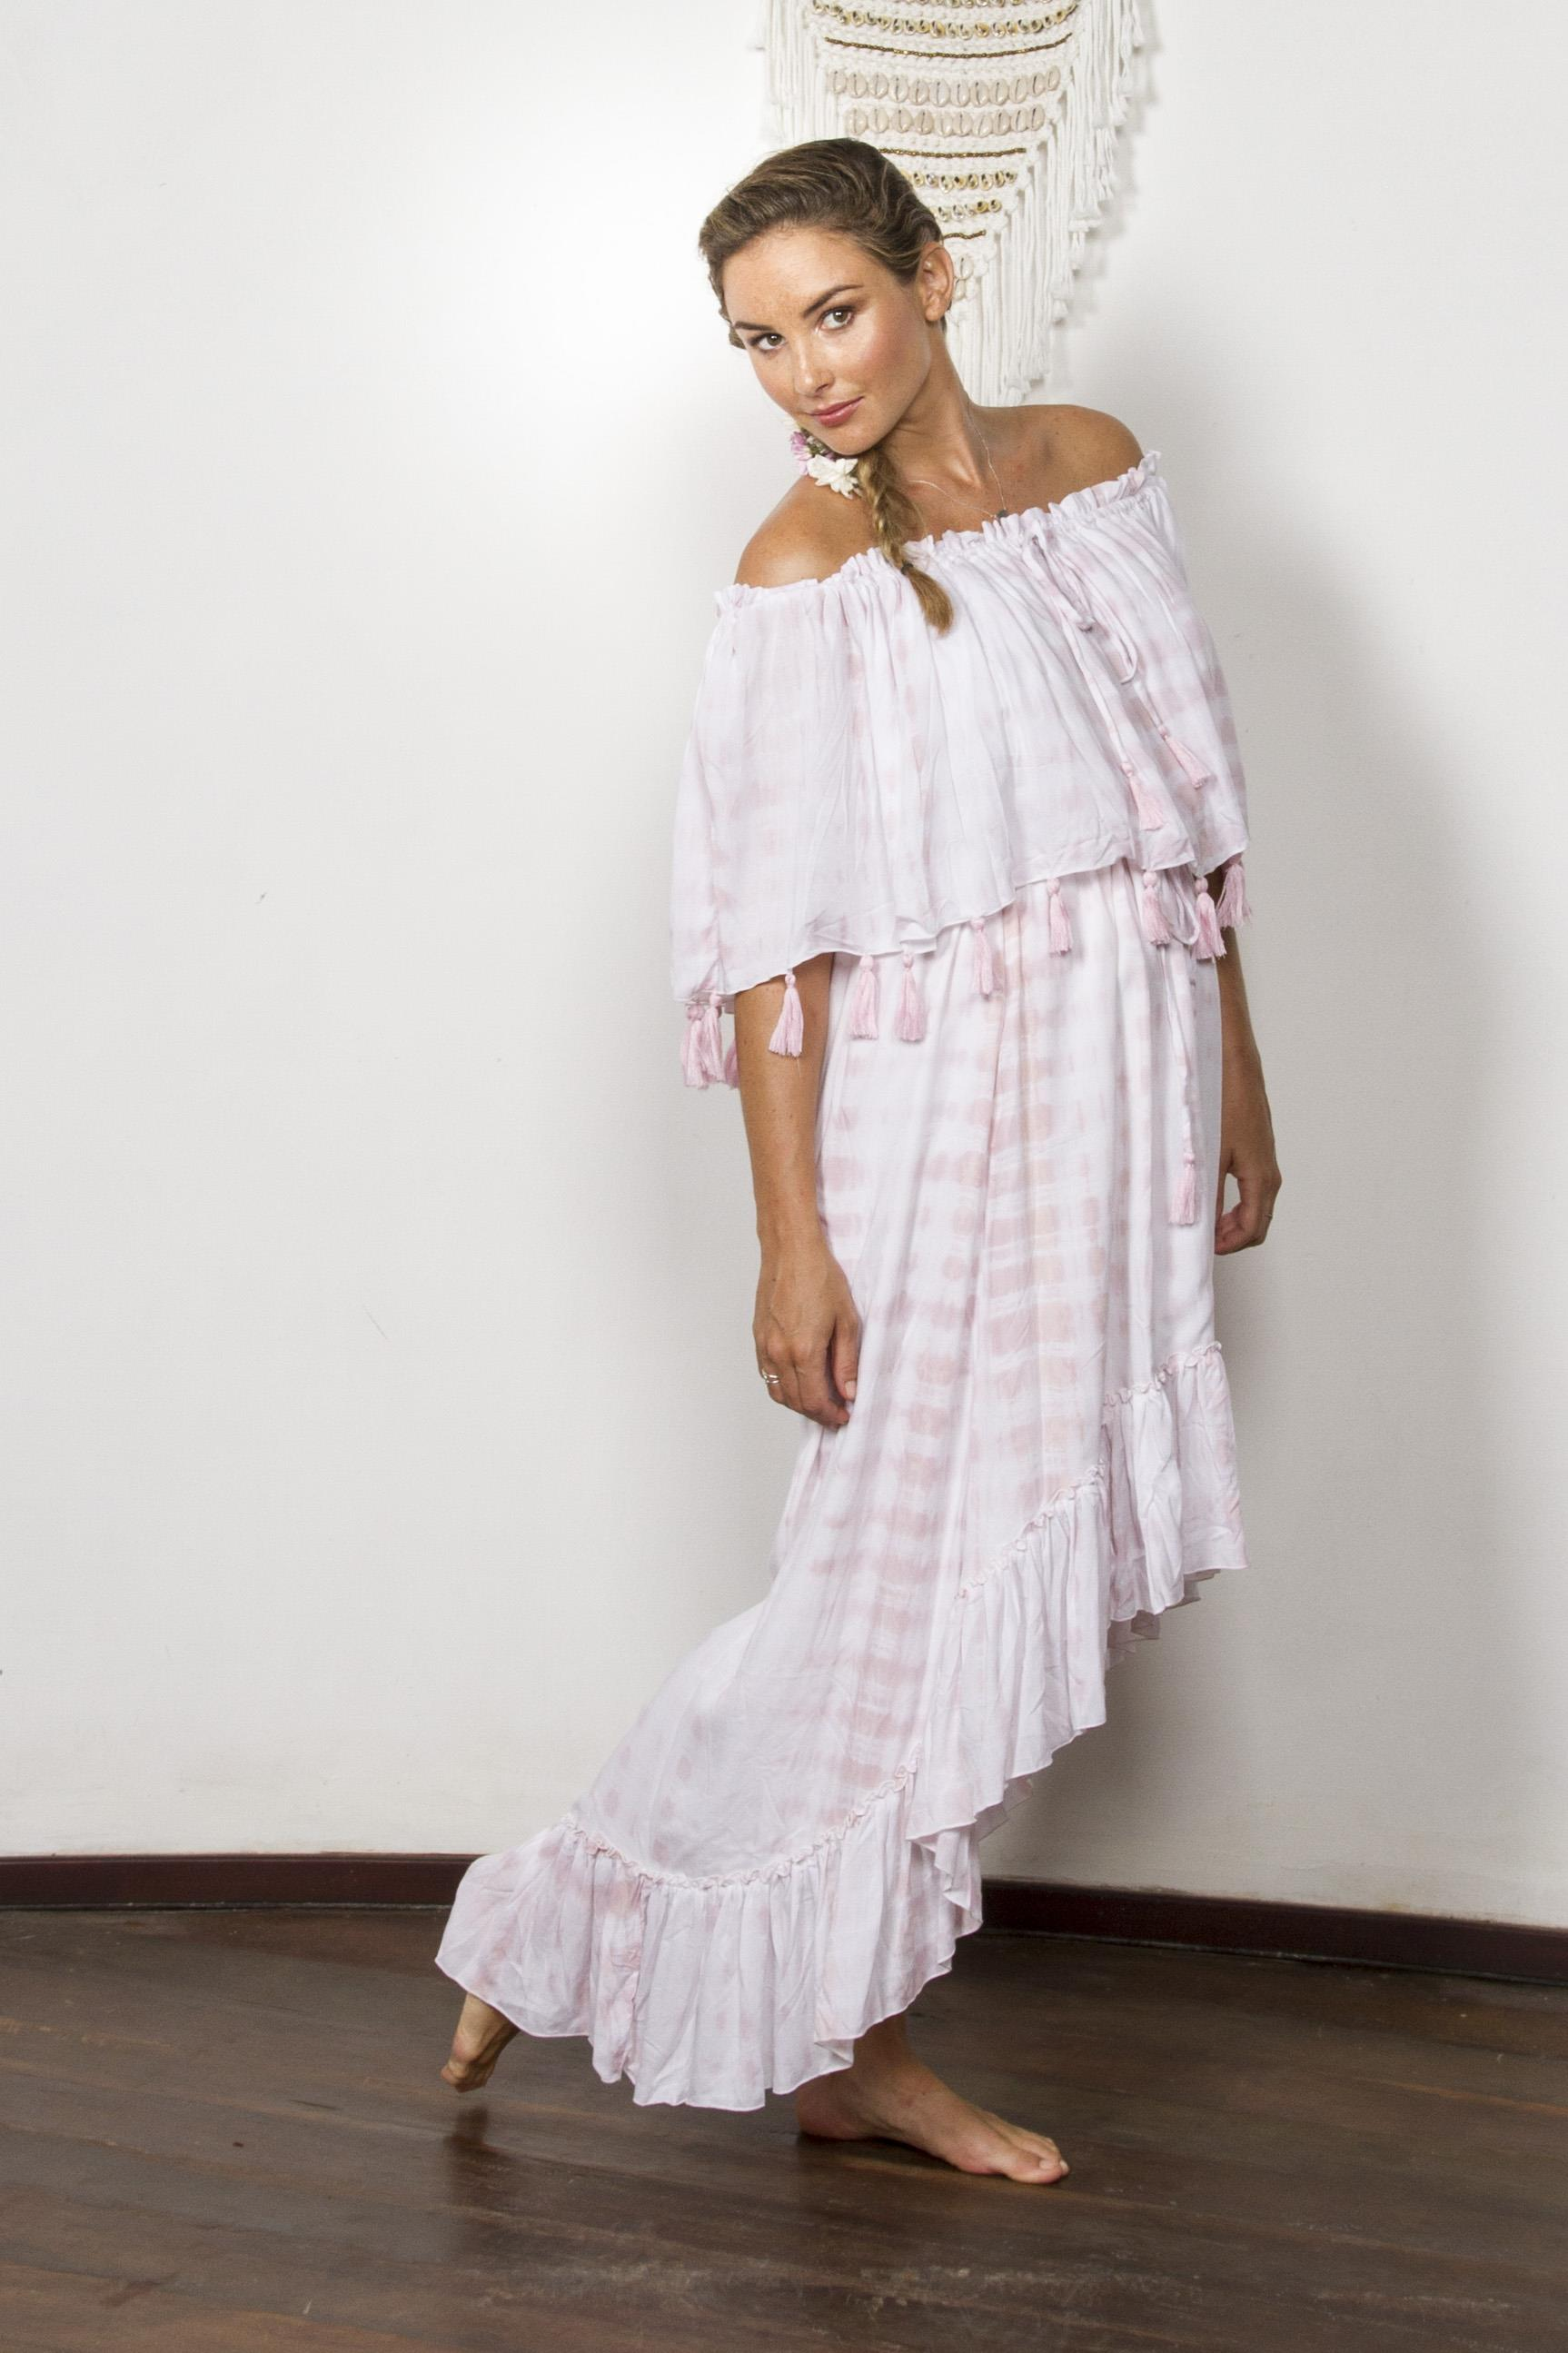 Shop all women's Gypsy05 dresses. Find your perfect mini or maxi dress for any fall occasion.